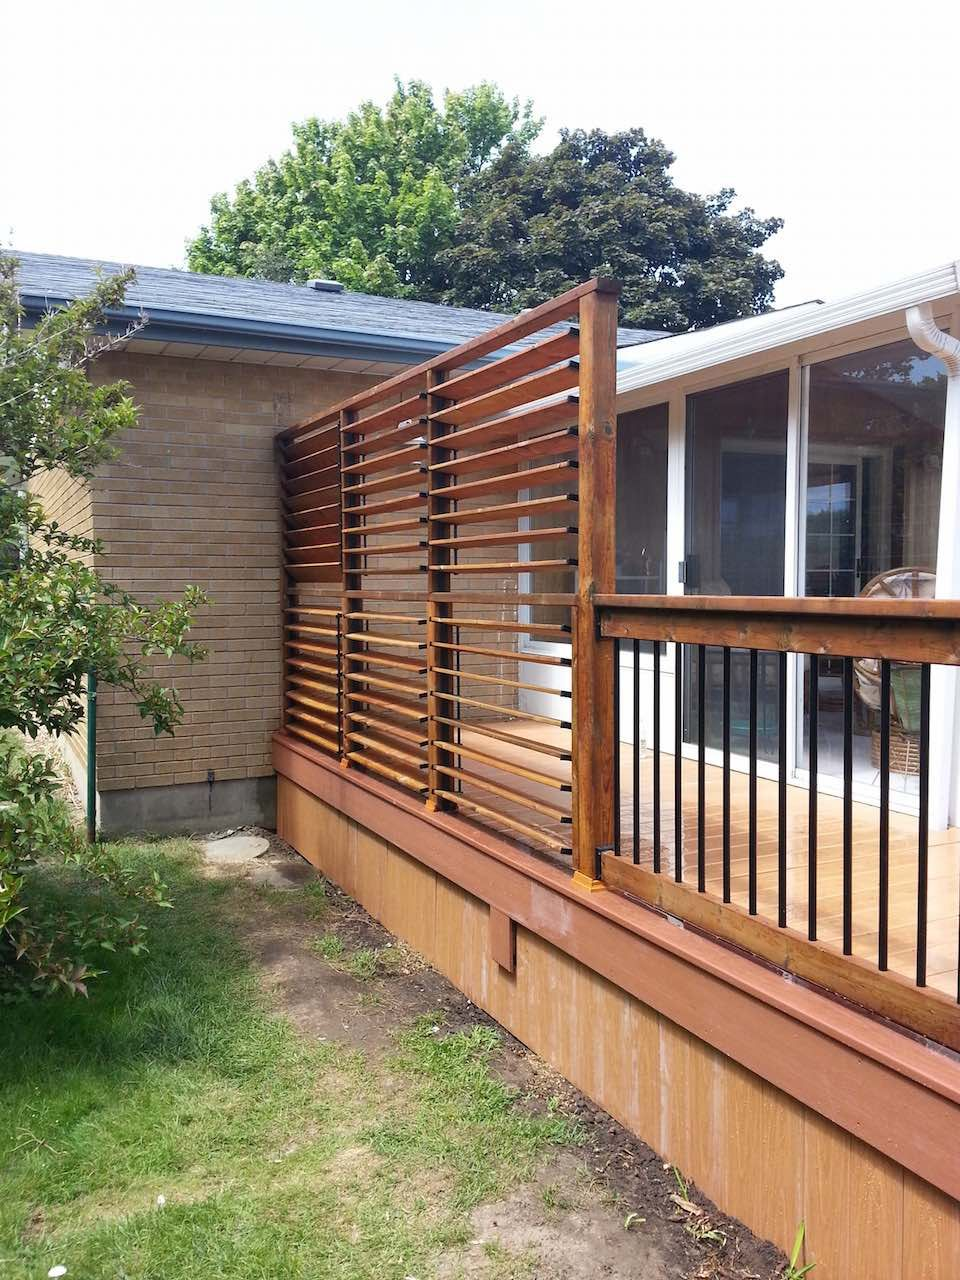 Backyard privacy screen louvers great solution by flex for Outdoor privacy fence screen